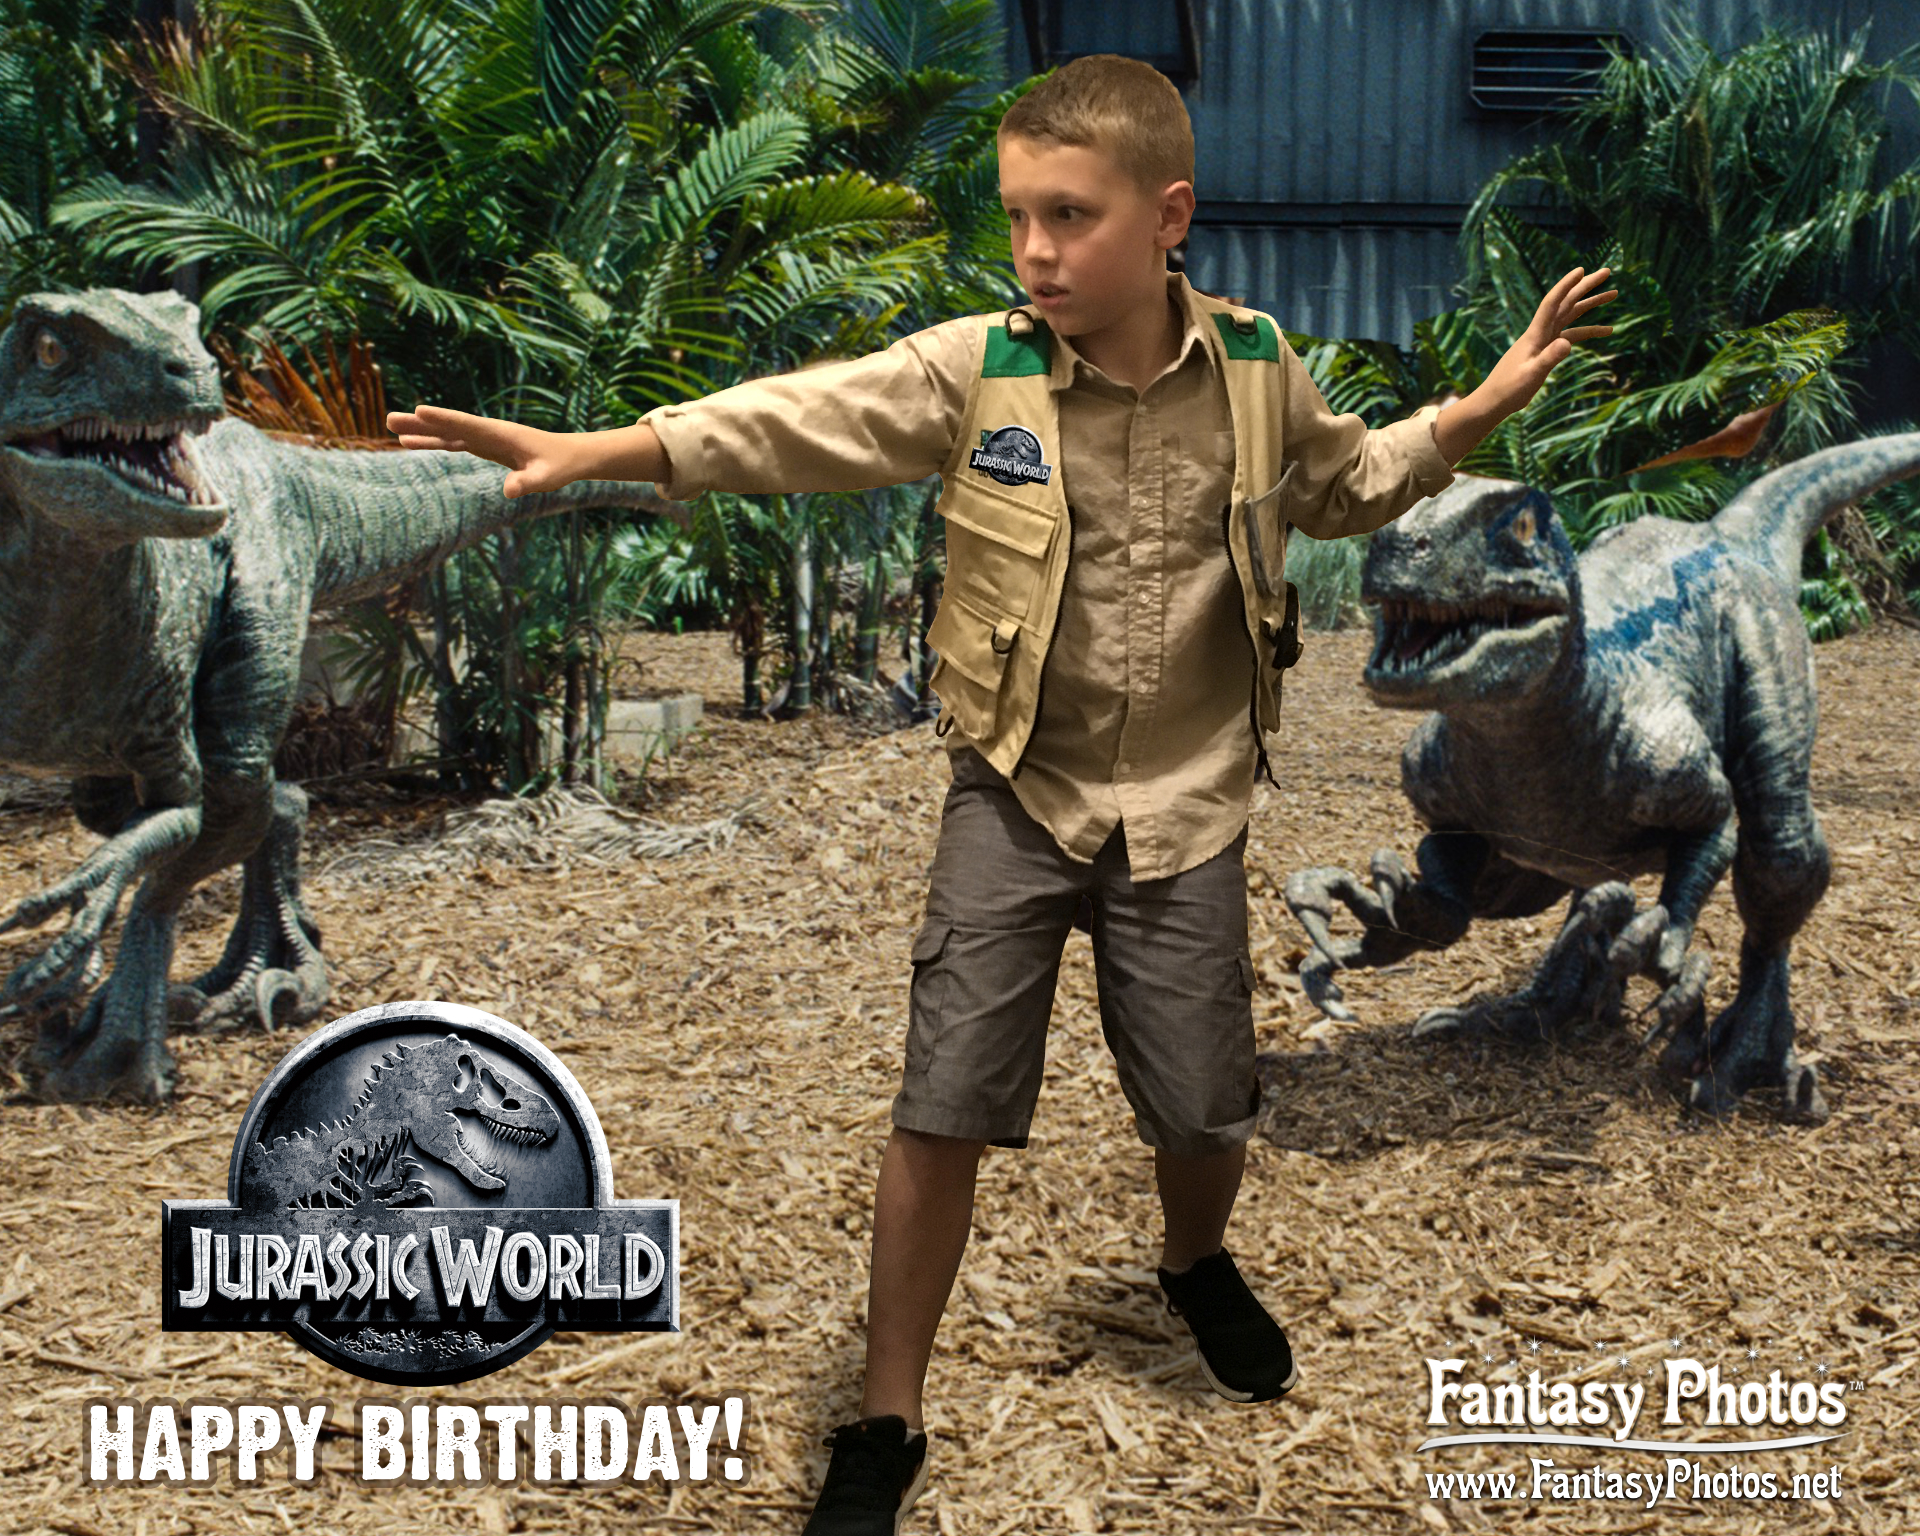 Fantasy Photos Jurassic World Birthday-W